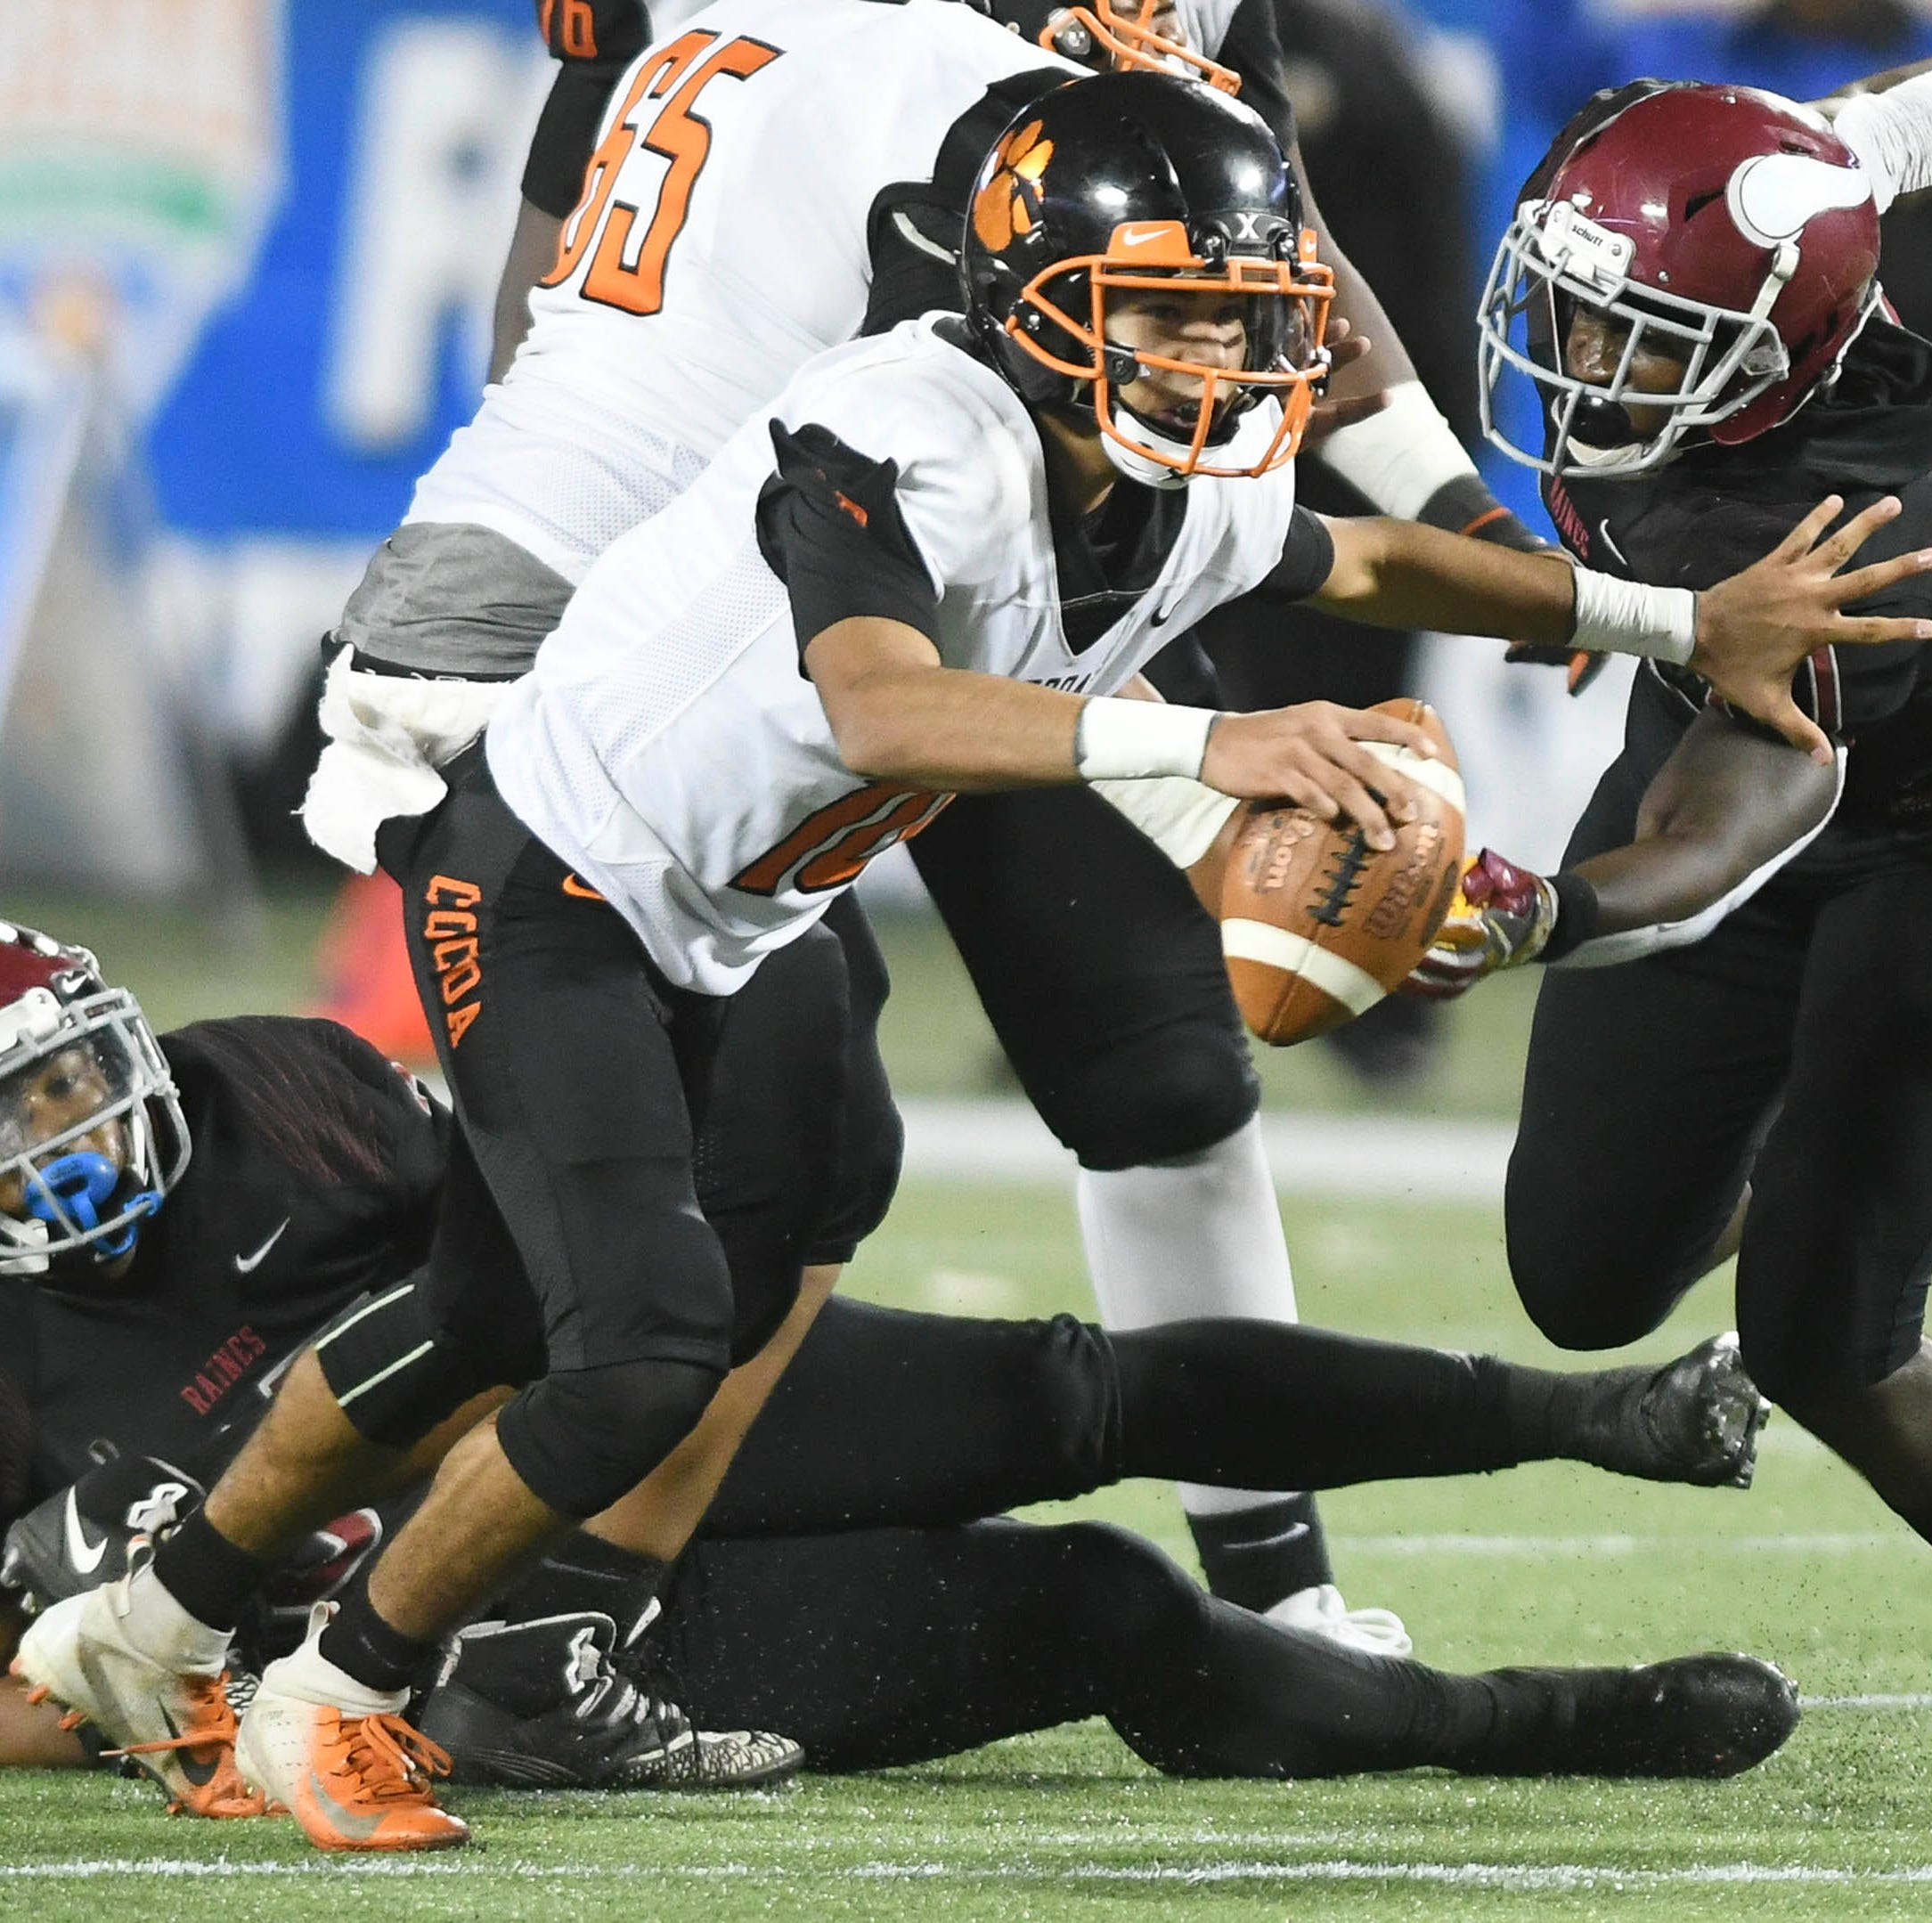 FHSAA moving state football finals to Daytona Beach, Tallahassee